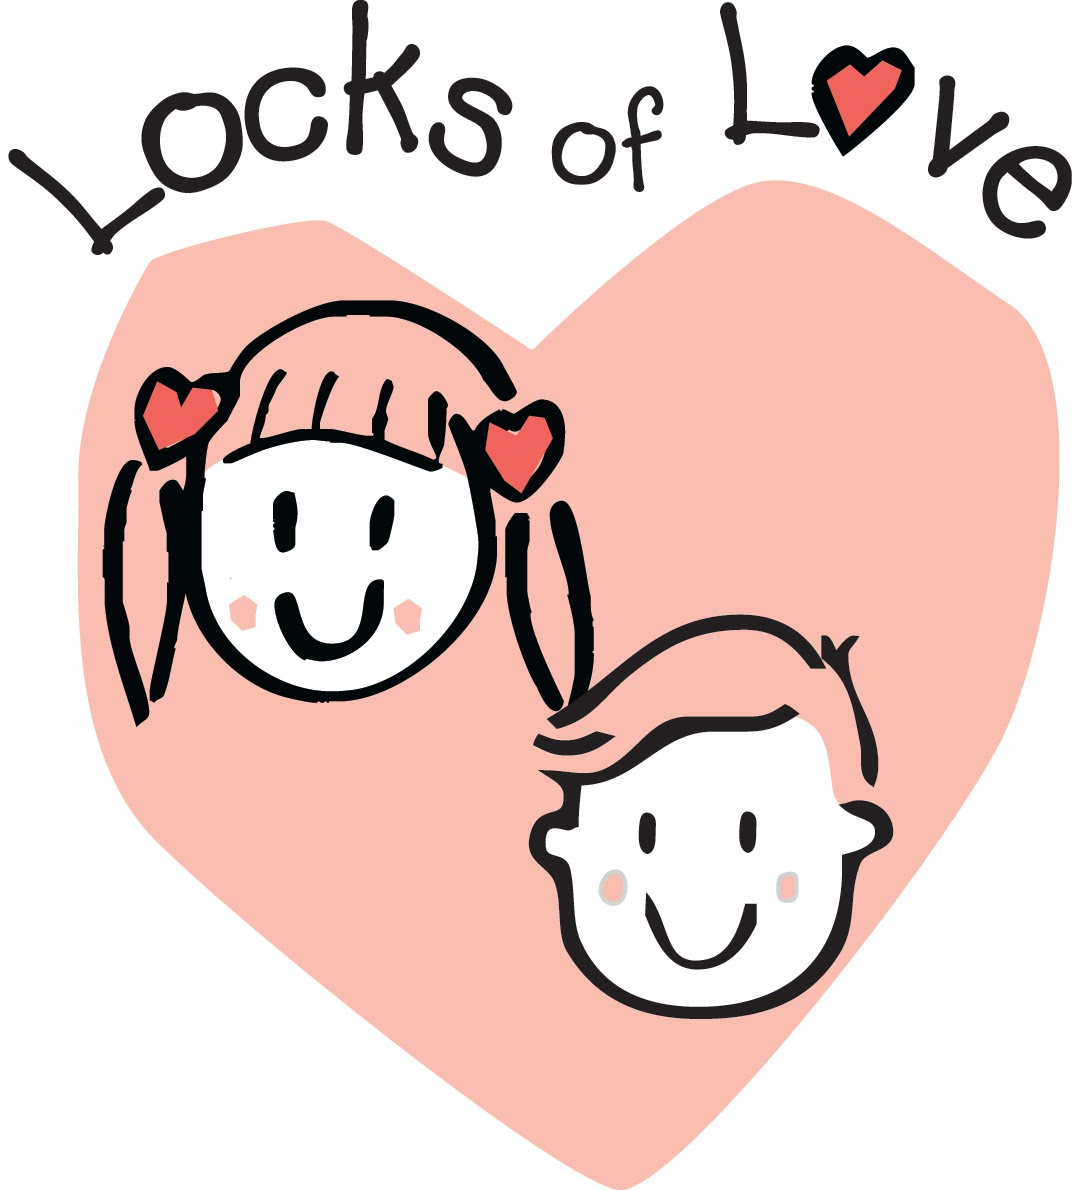 LocksOfLove